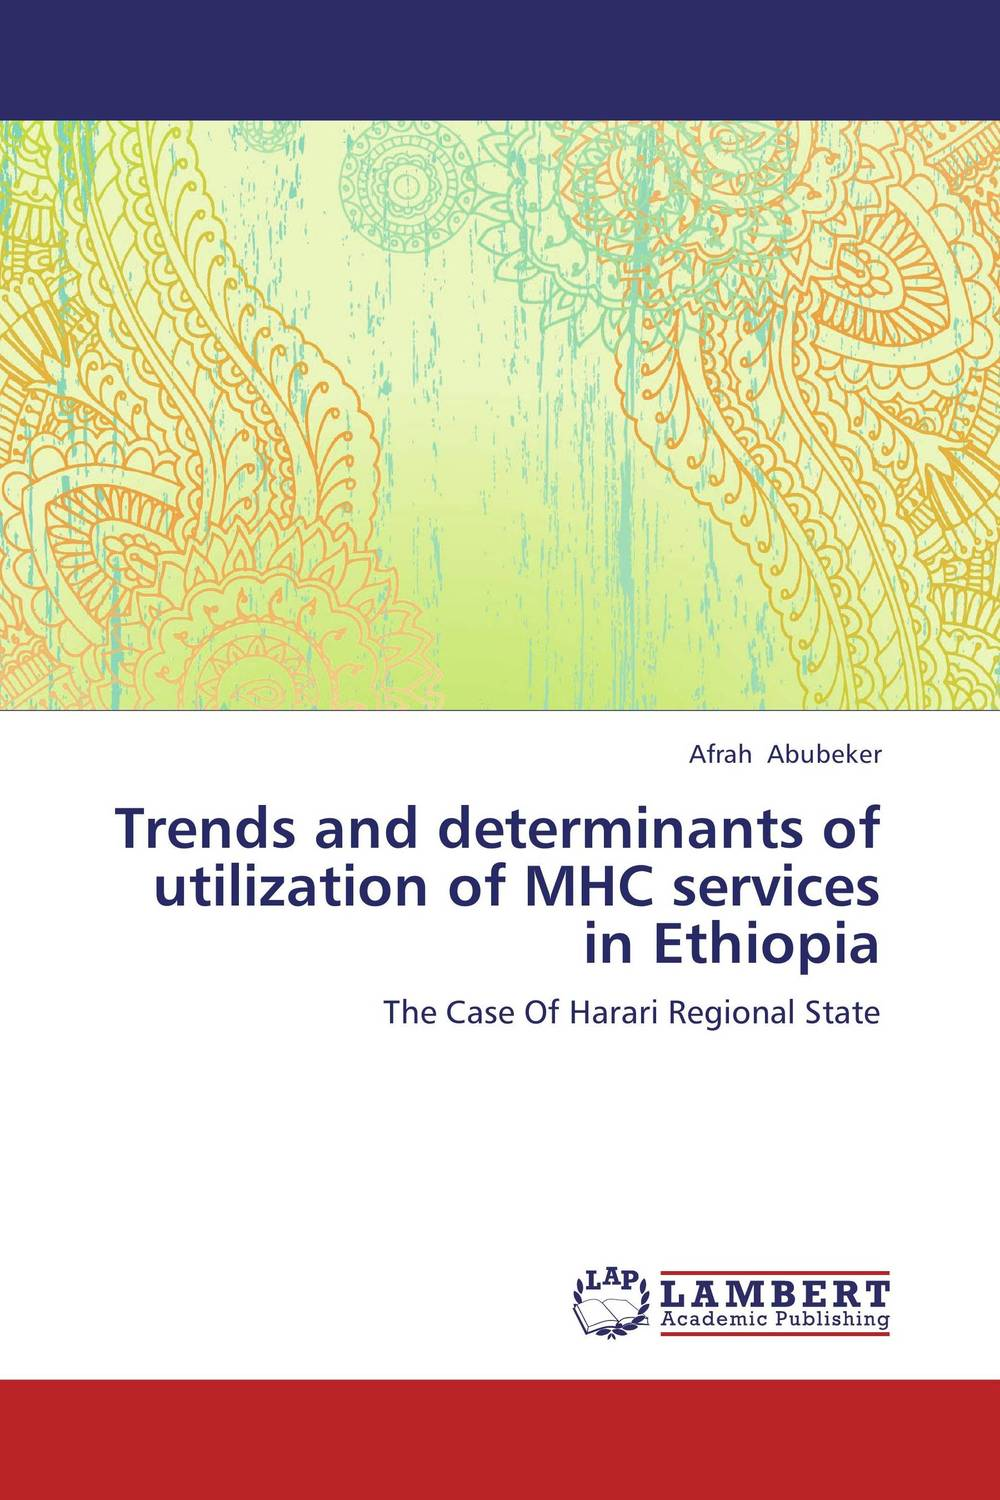 Trends and determinants of utilization of MHC services in Ethiopia